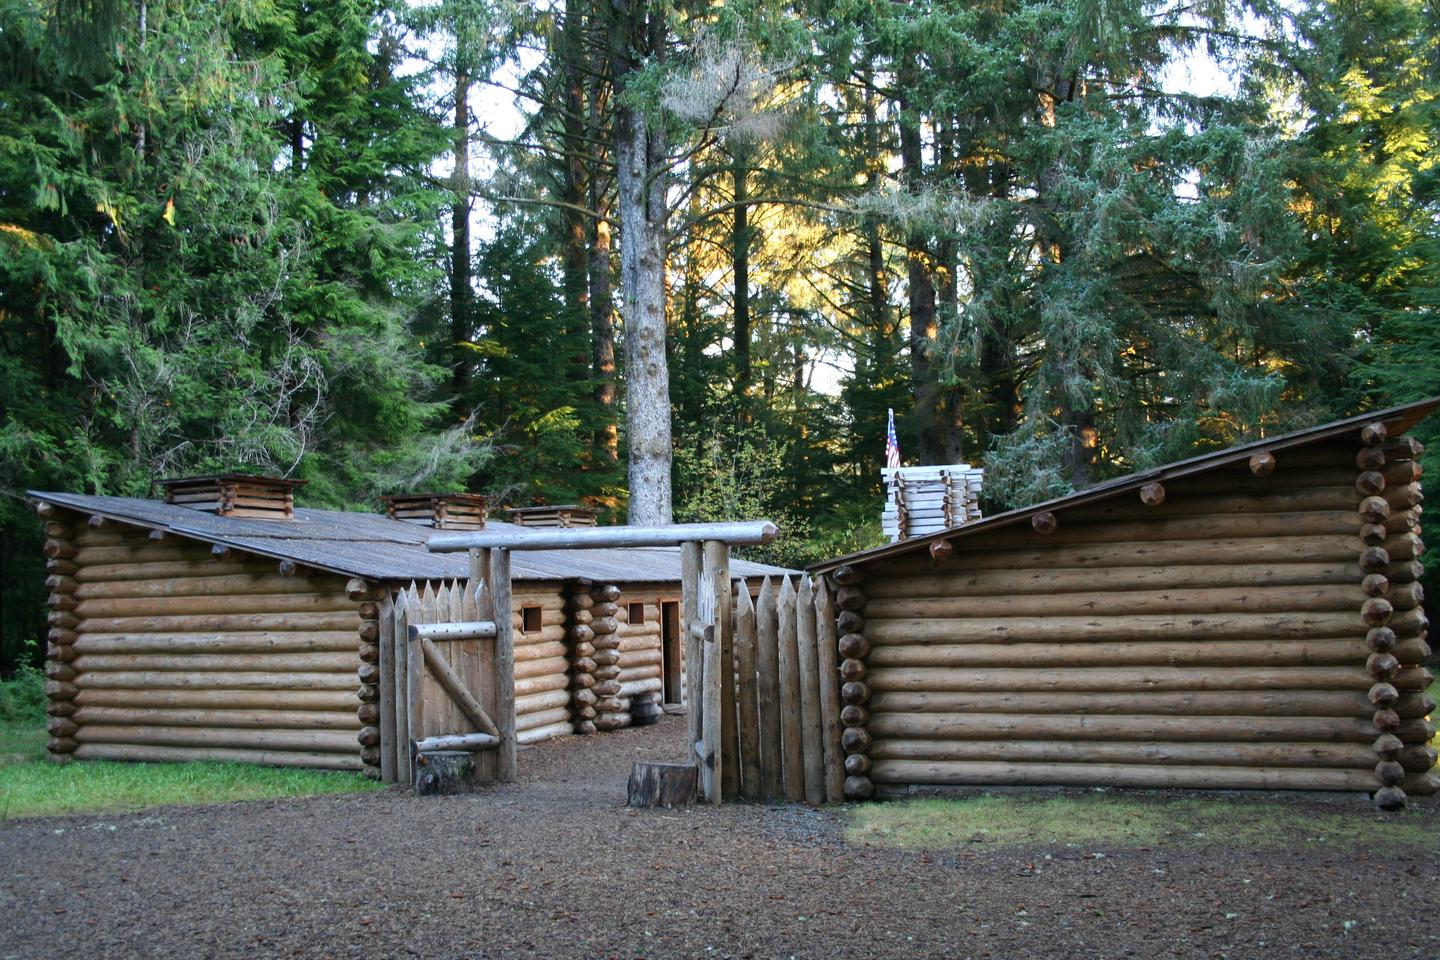 Fort ClatsopThe second replica of Fort Clatsop is the main attraction at Lewis and Clark National Historical Park